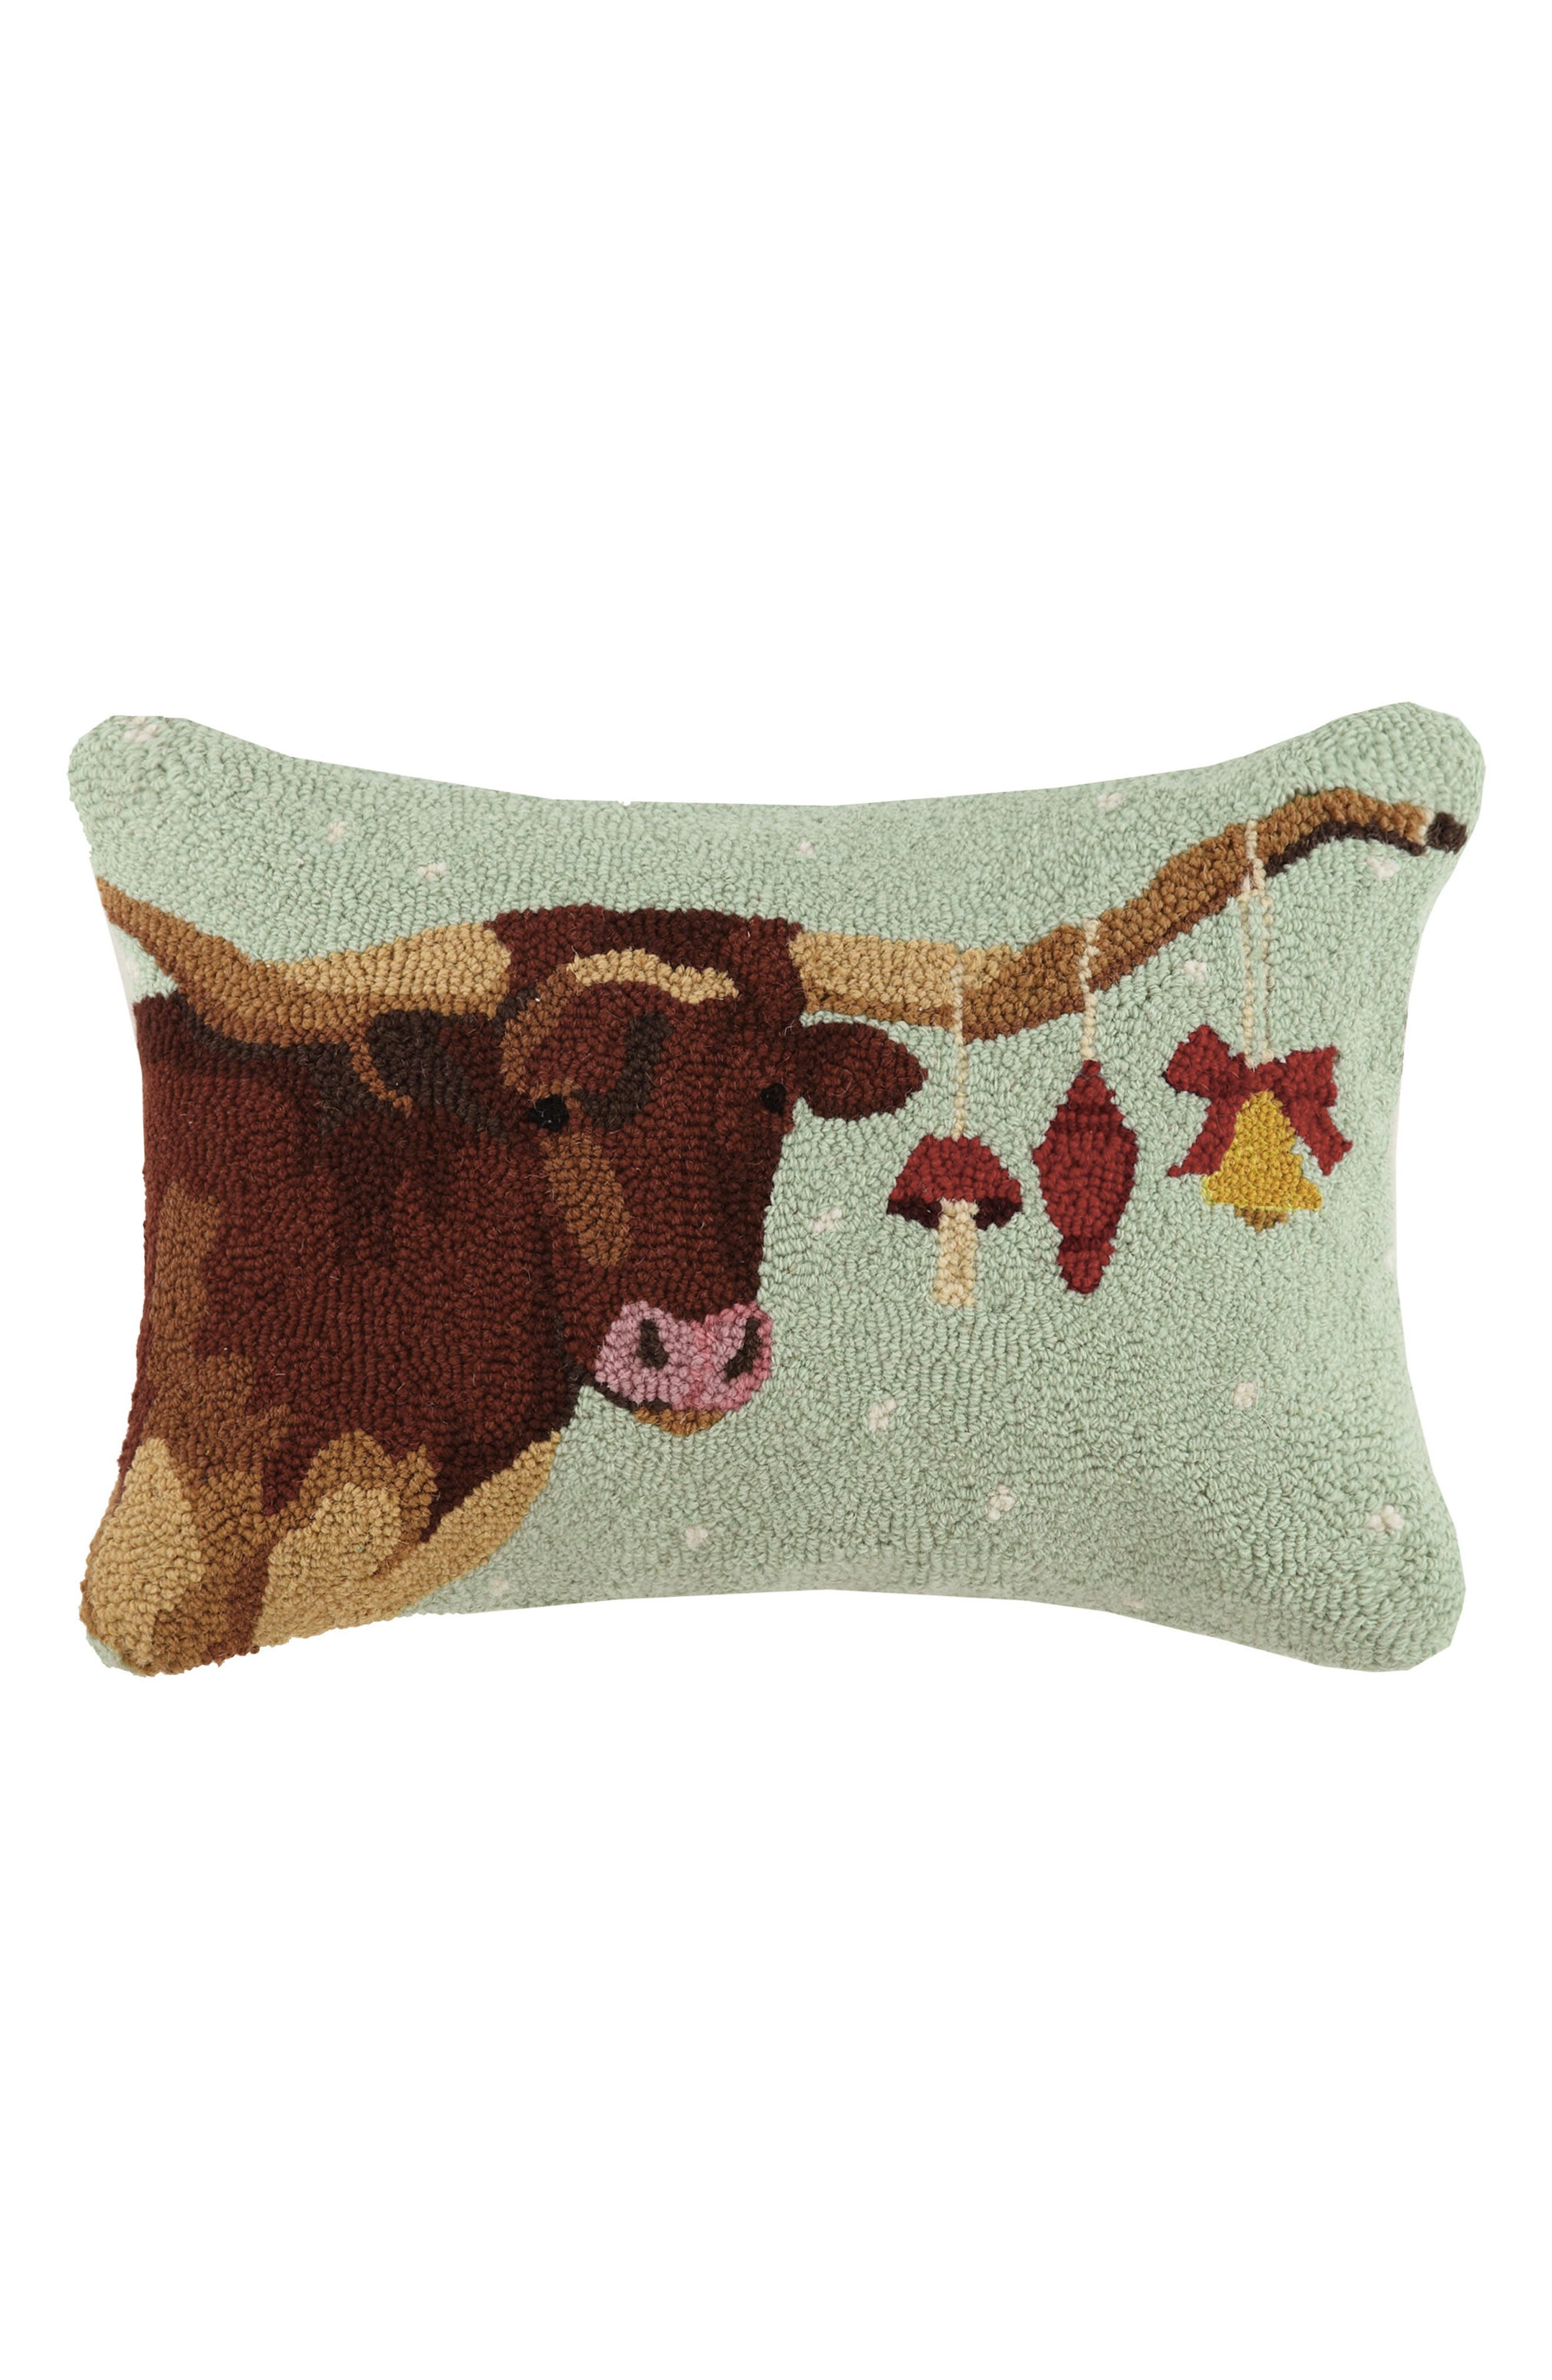 Longhorn with Ornaments Hooked Accent Pillow,                         Main,                         color,